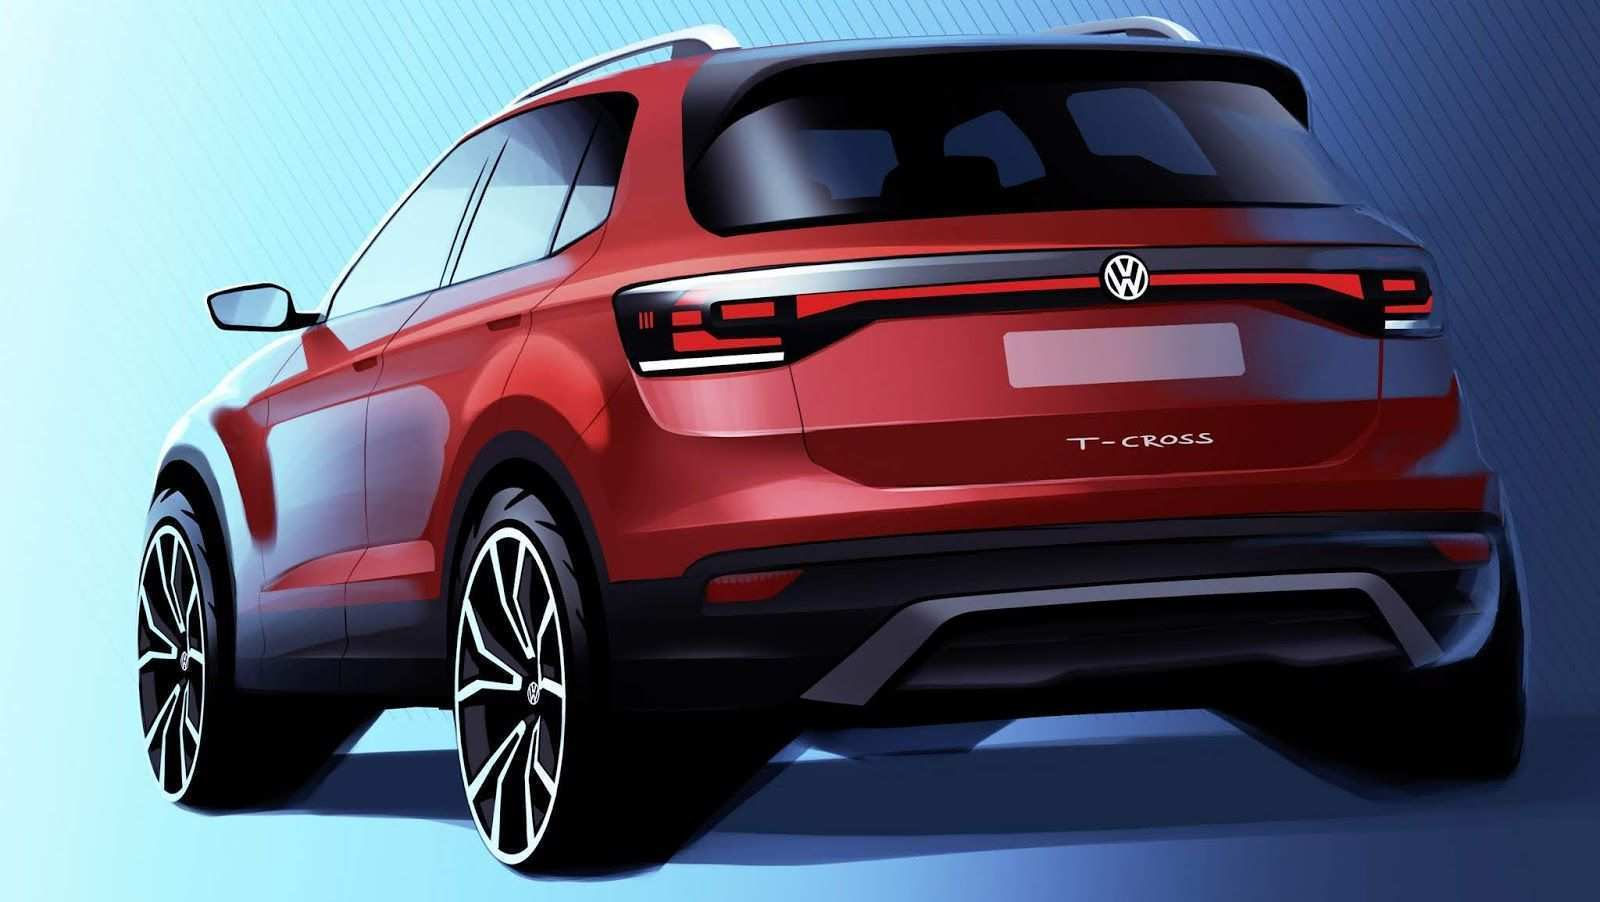 39 New Lanzamientos Vw 2019 Overview